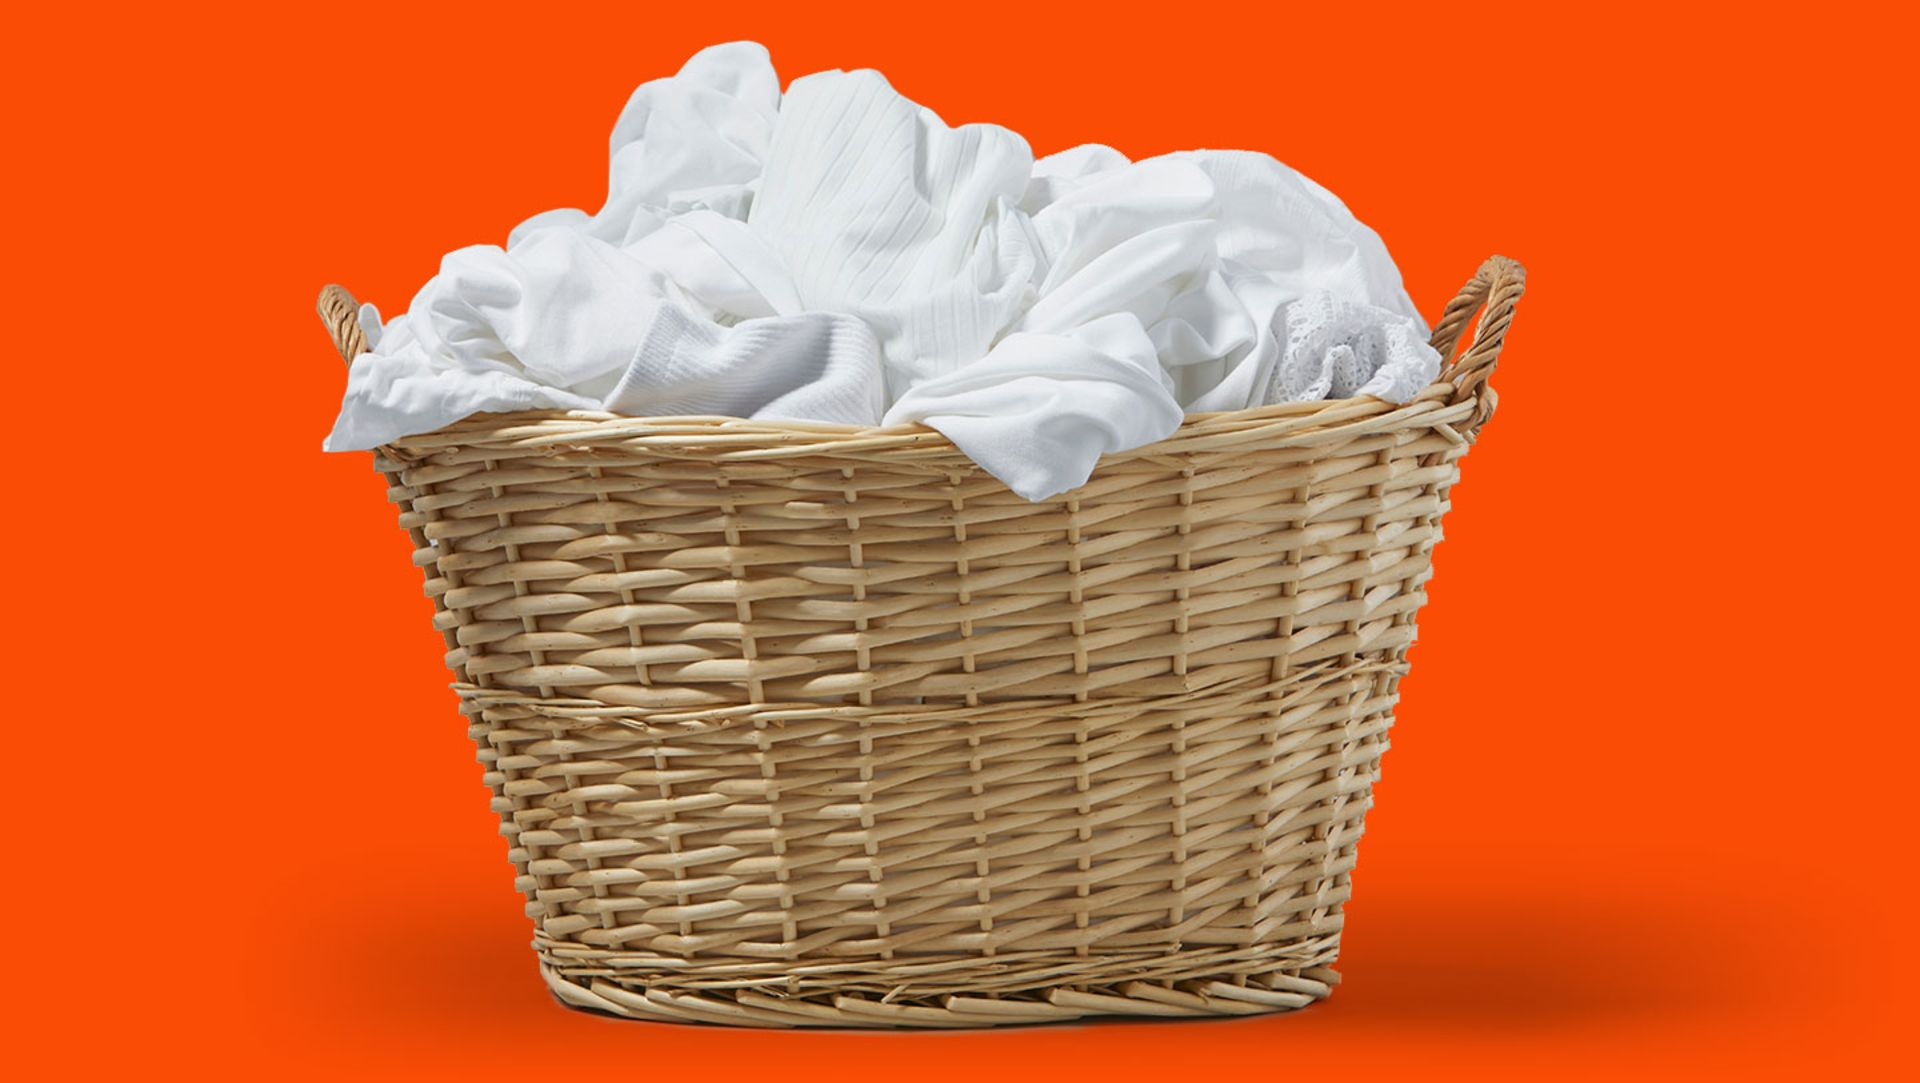 White garments in a woven laundry basket